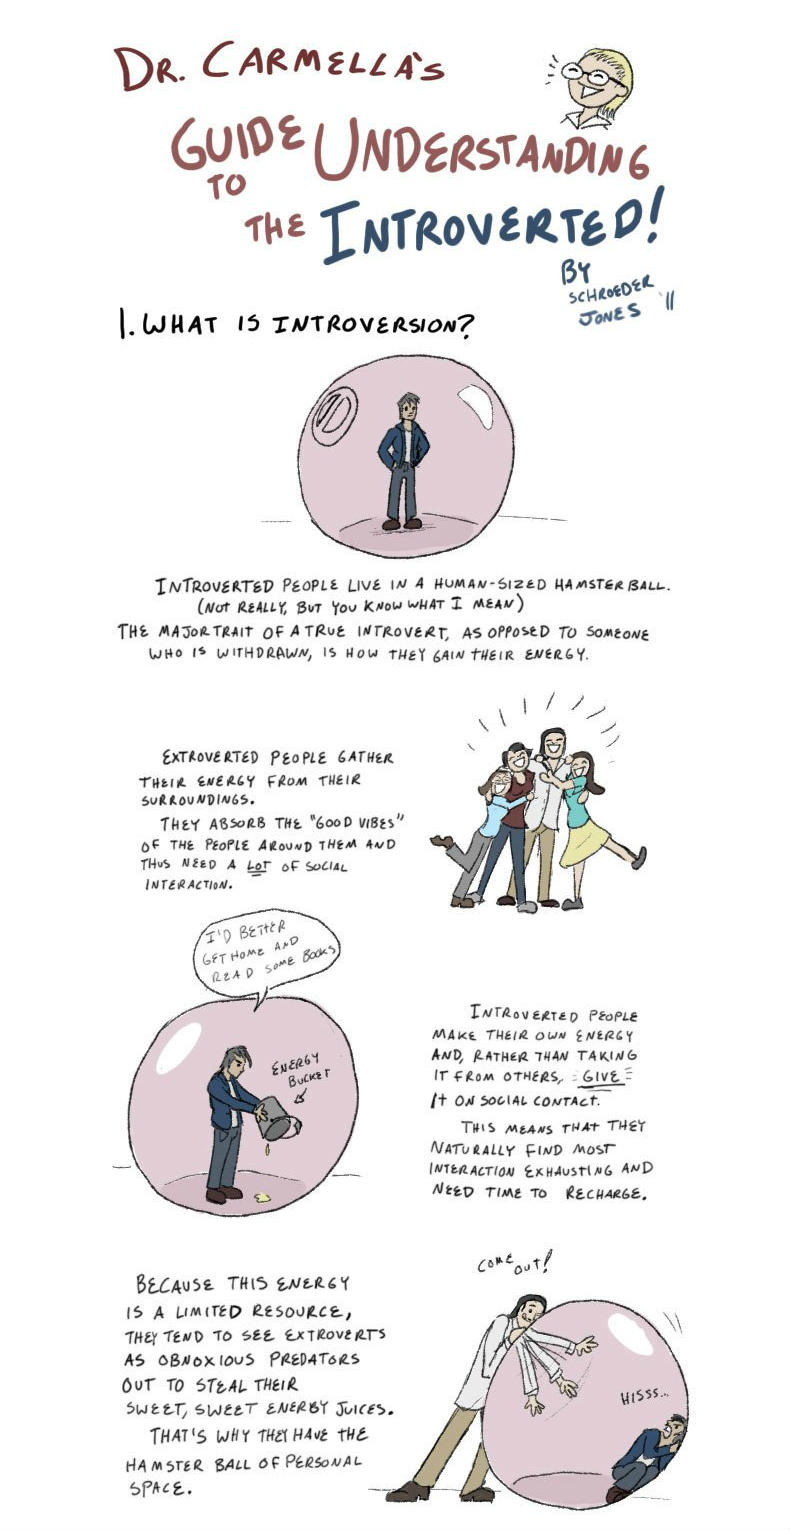 interacting-with-an-introvert-infographic 1